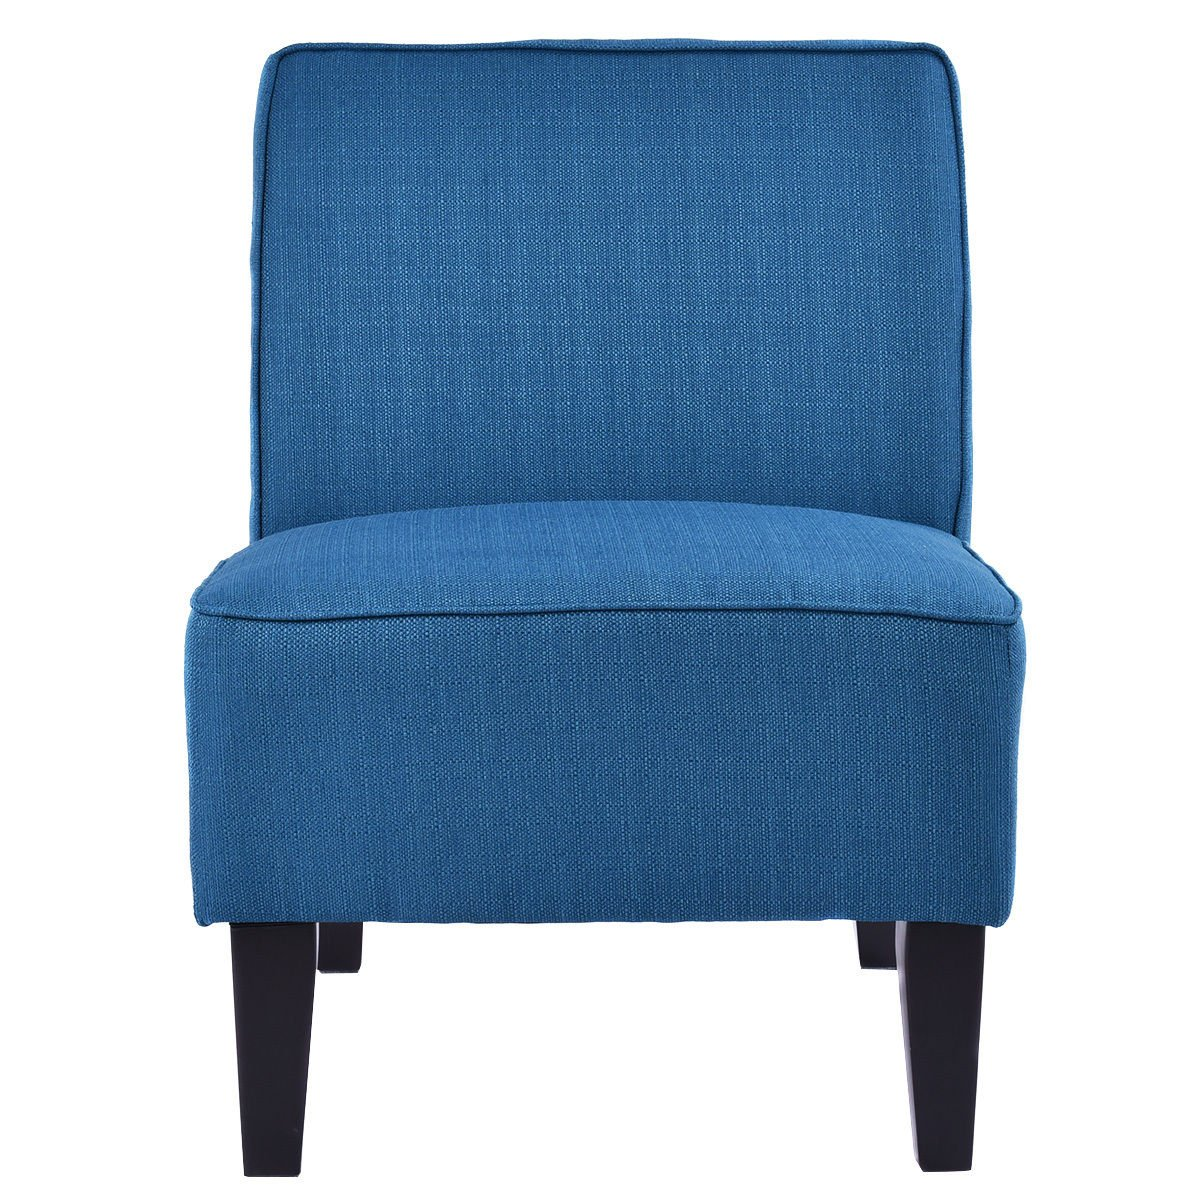 Giantex Deco Solids Accent Chair Armless Living Room Bedroom Office Contemporary (Blue)